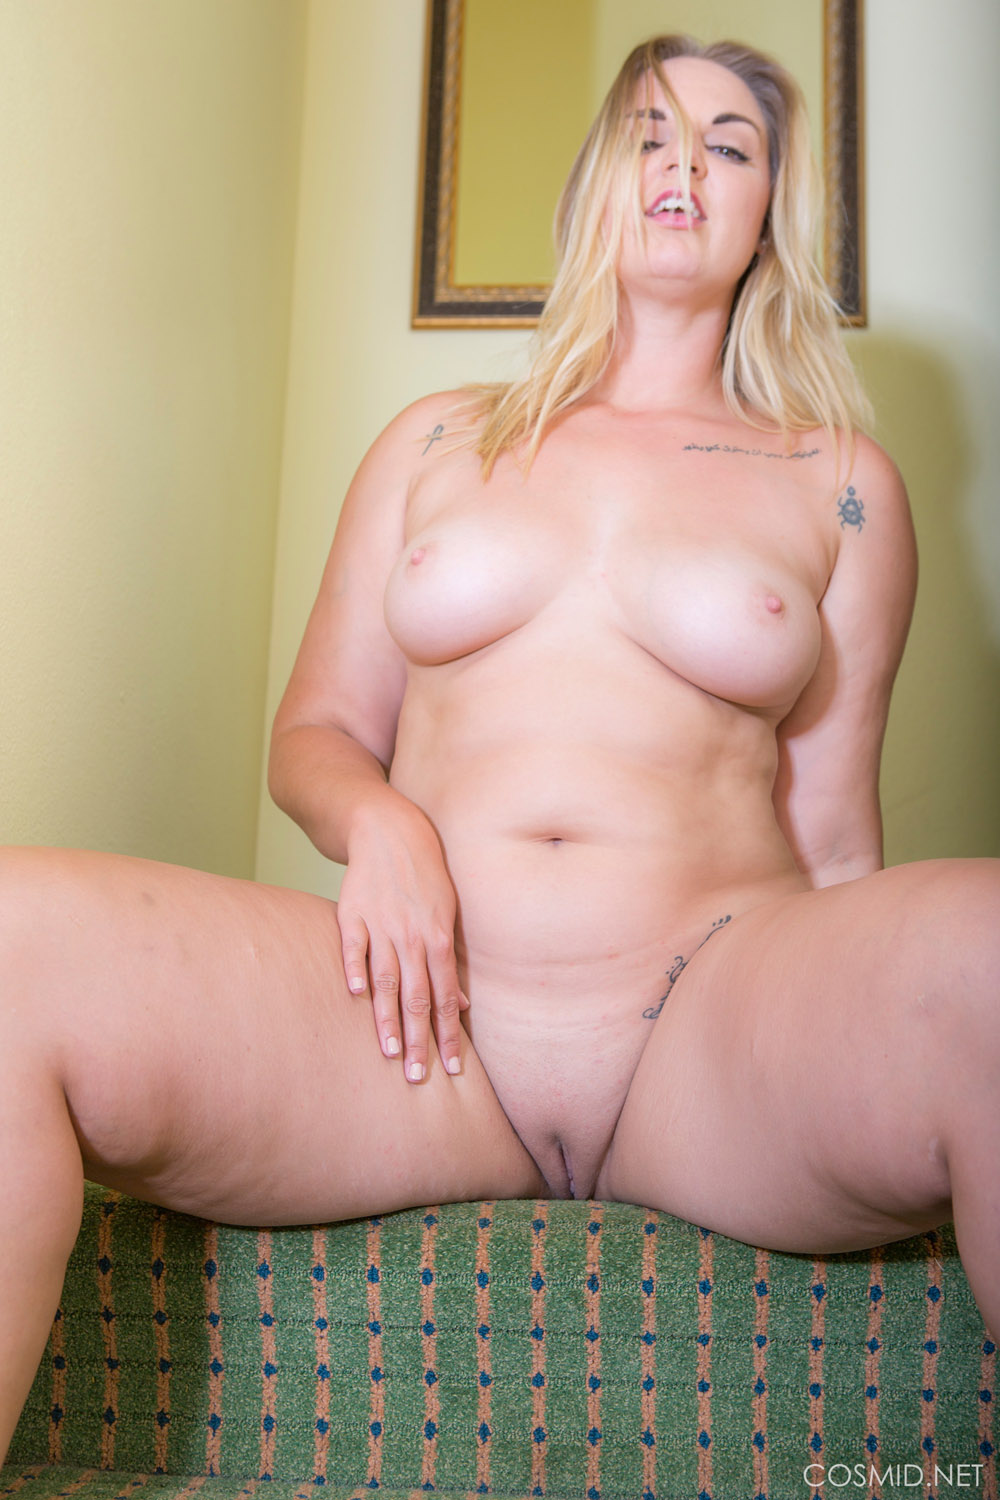 Carrie Voluptuous Curves for Cosmid - Curvy Erotic